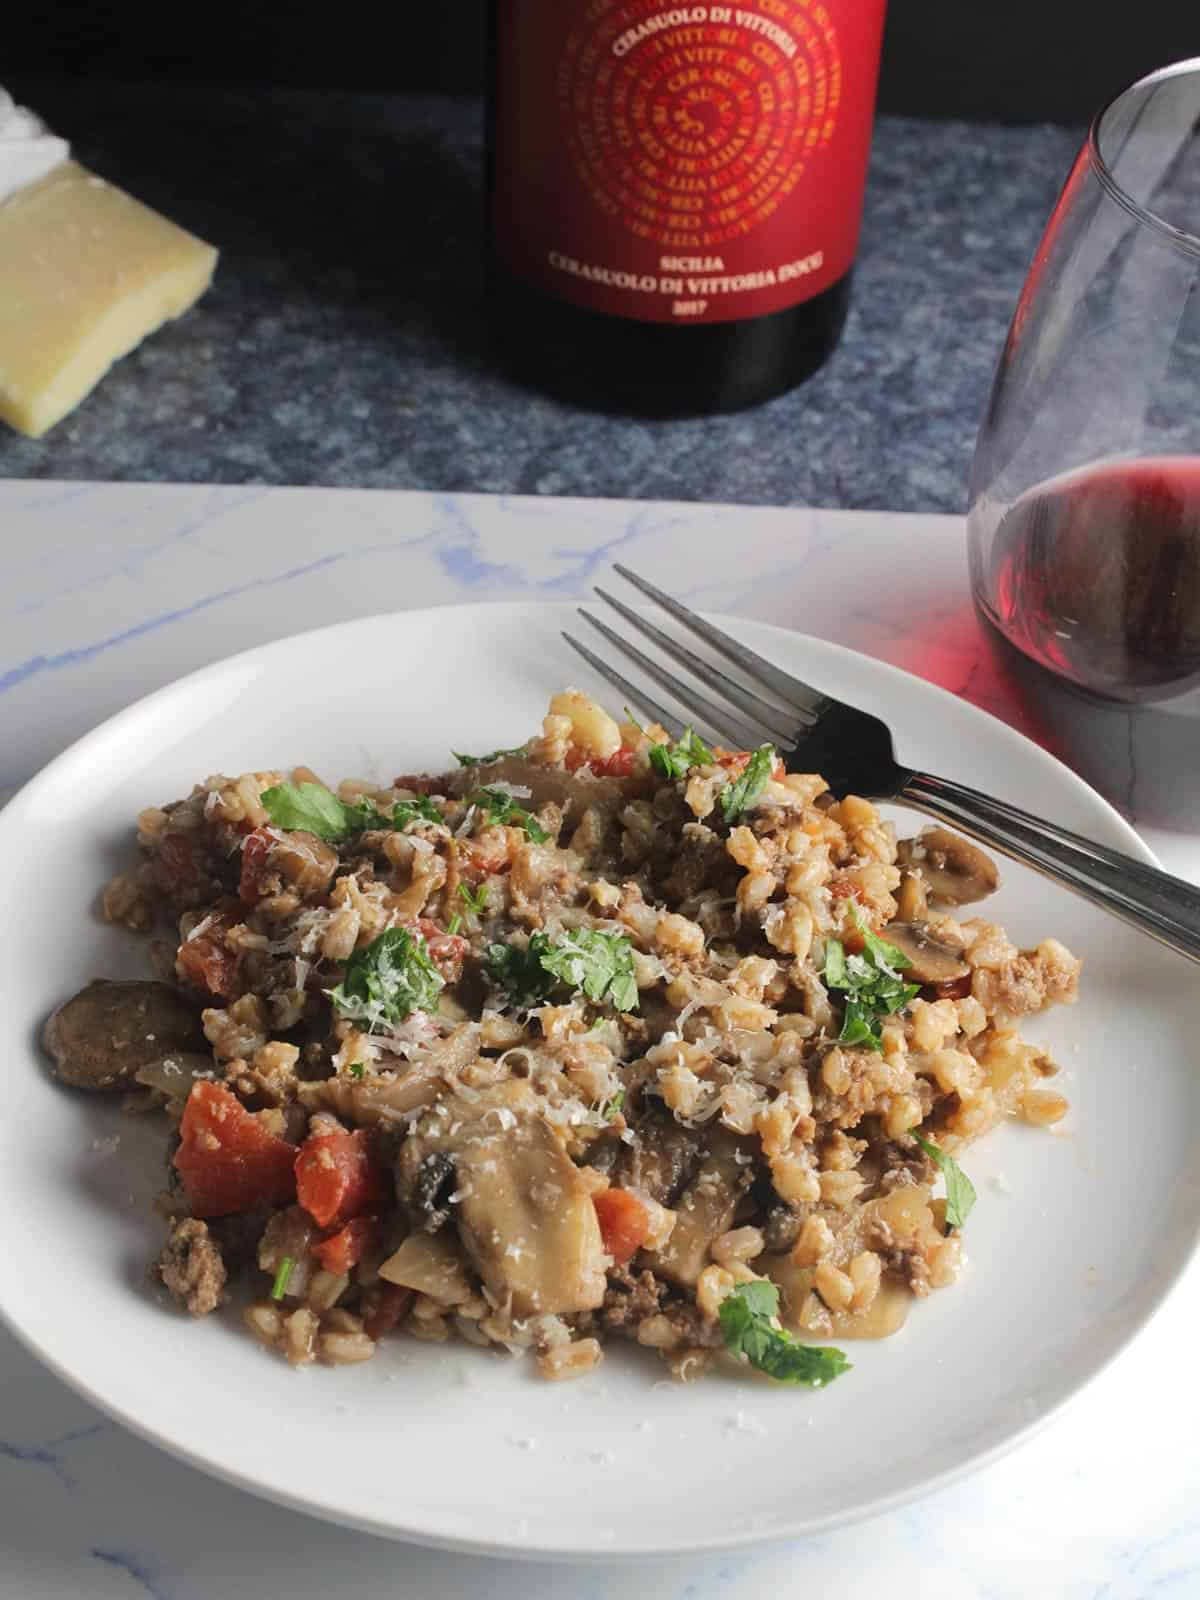 Sicilian red wine with farro dish.